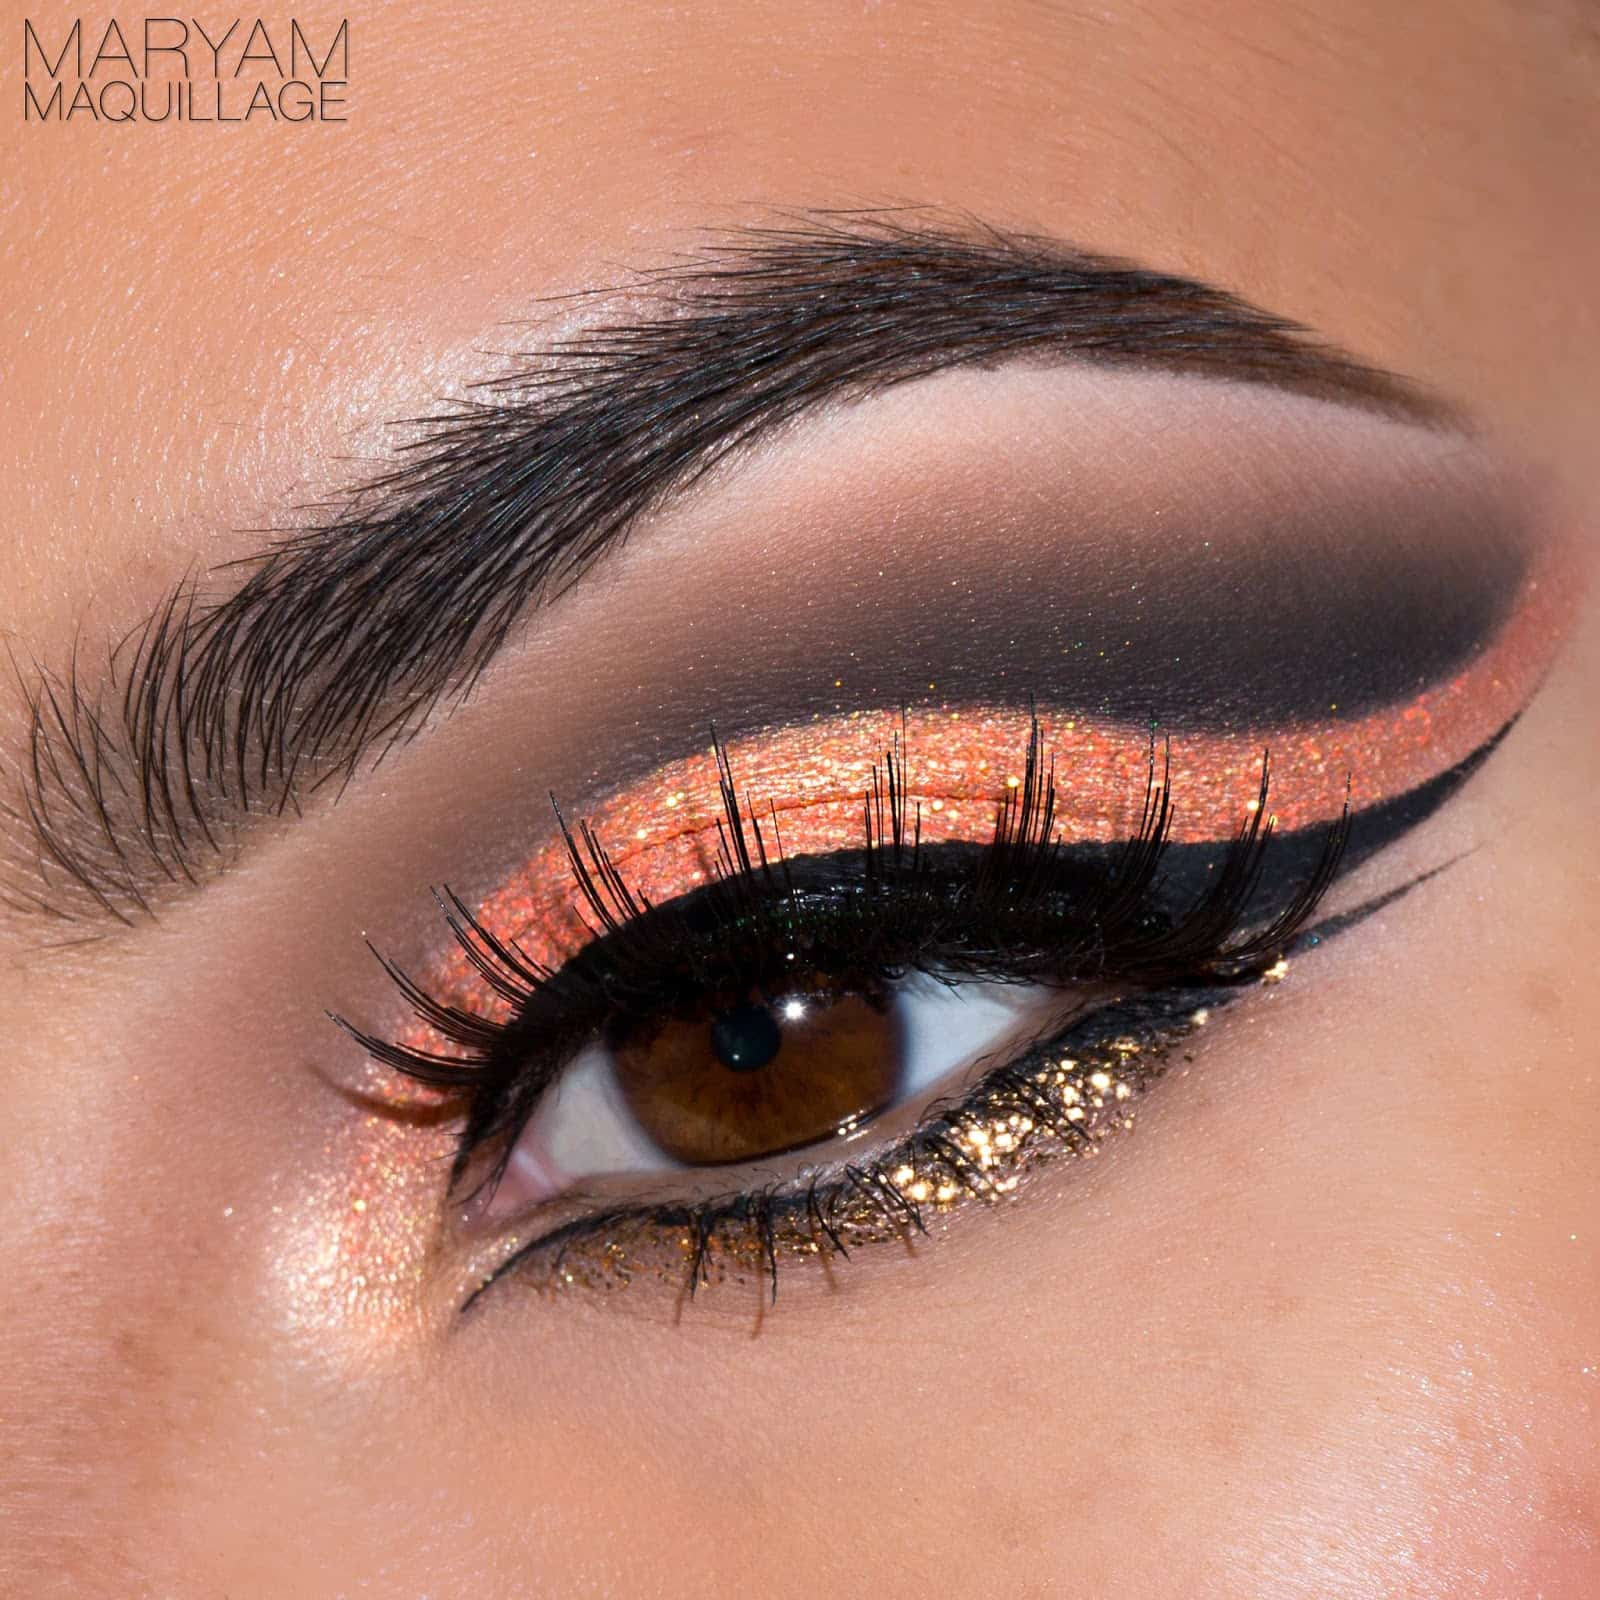 Maryam Maquillage Orange and Black Halloween Eye Makeup